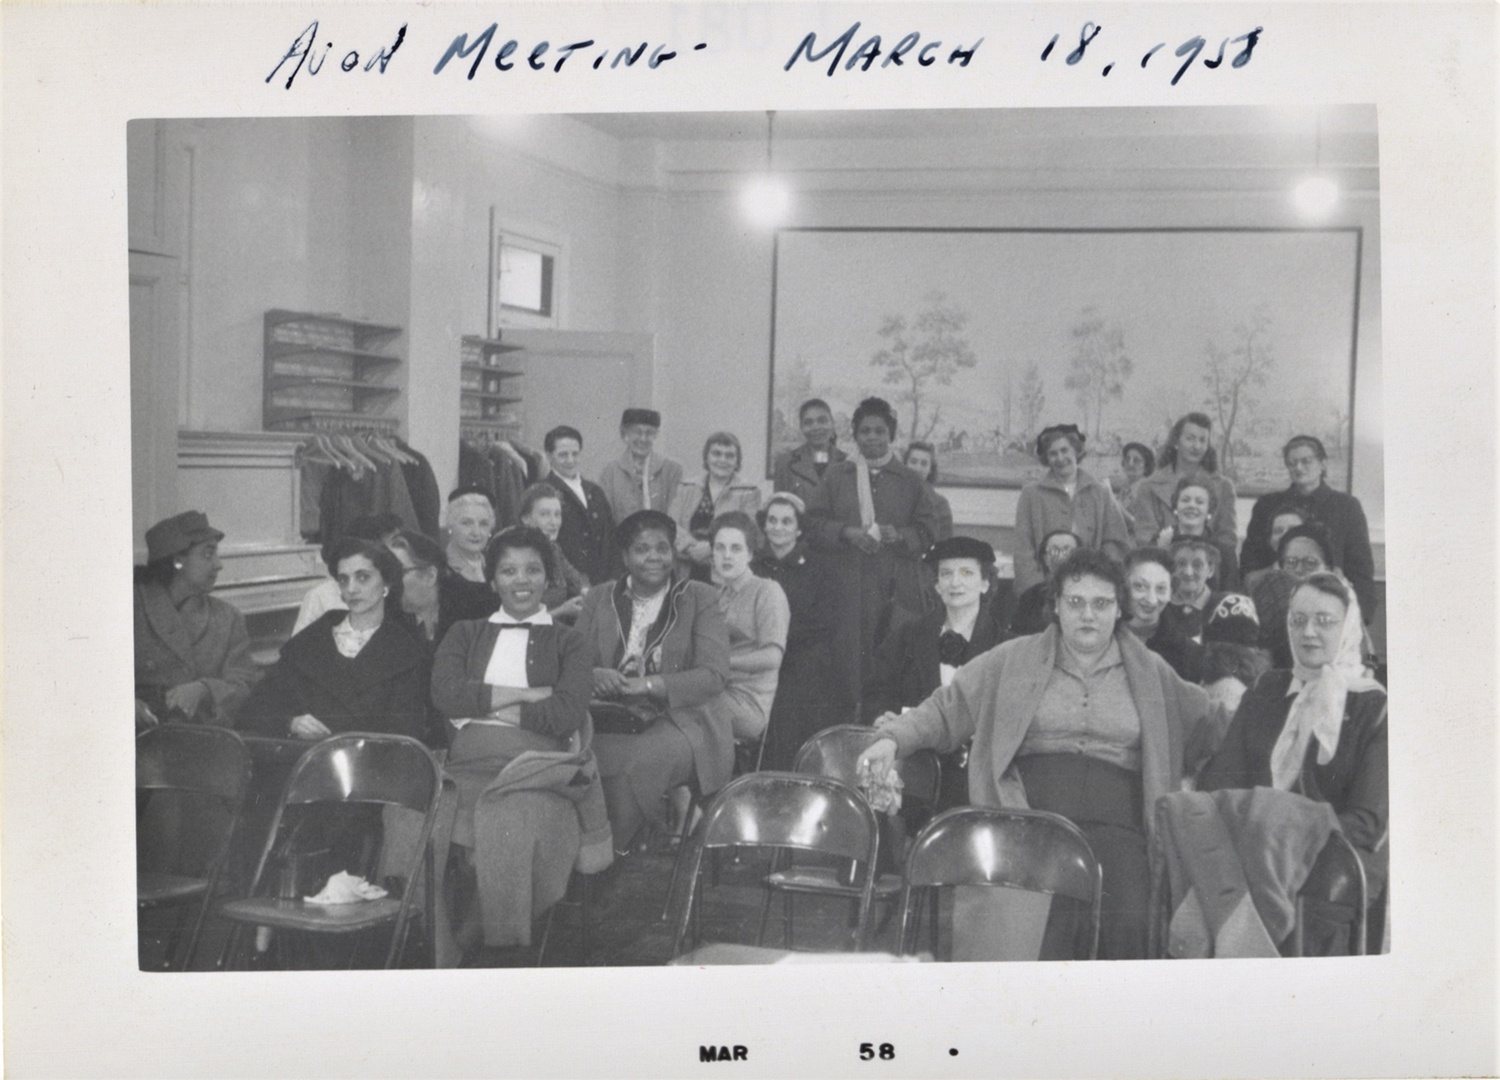 Photograph of an Avon district business meeting, March 18, 1958.